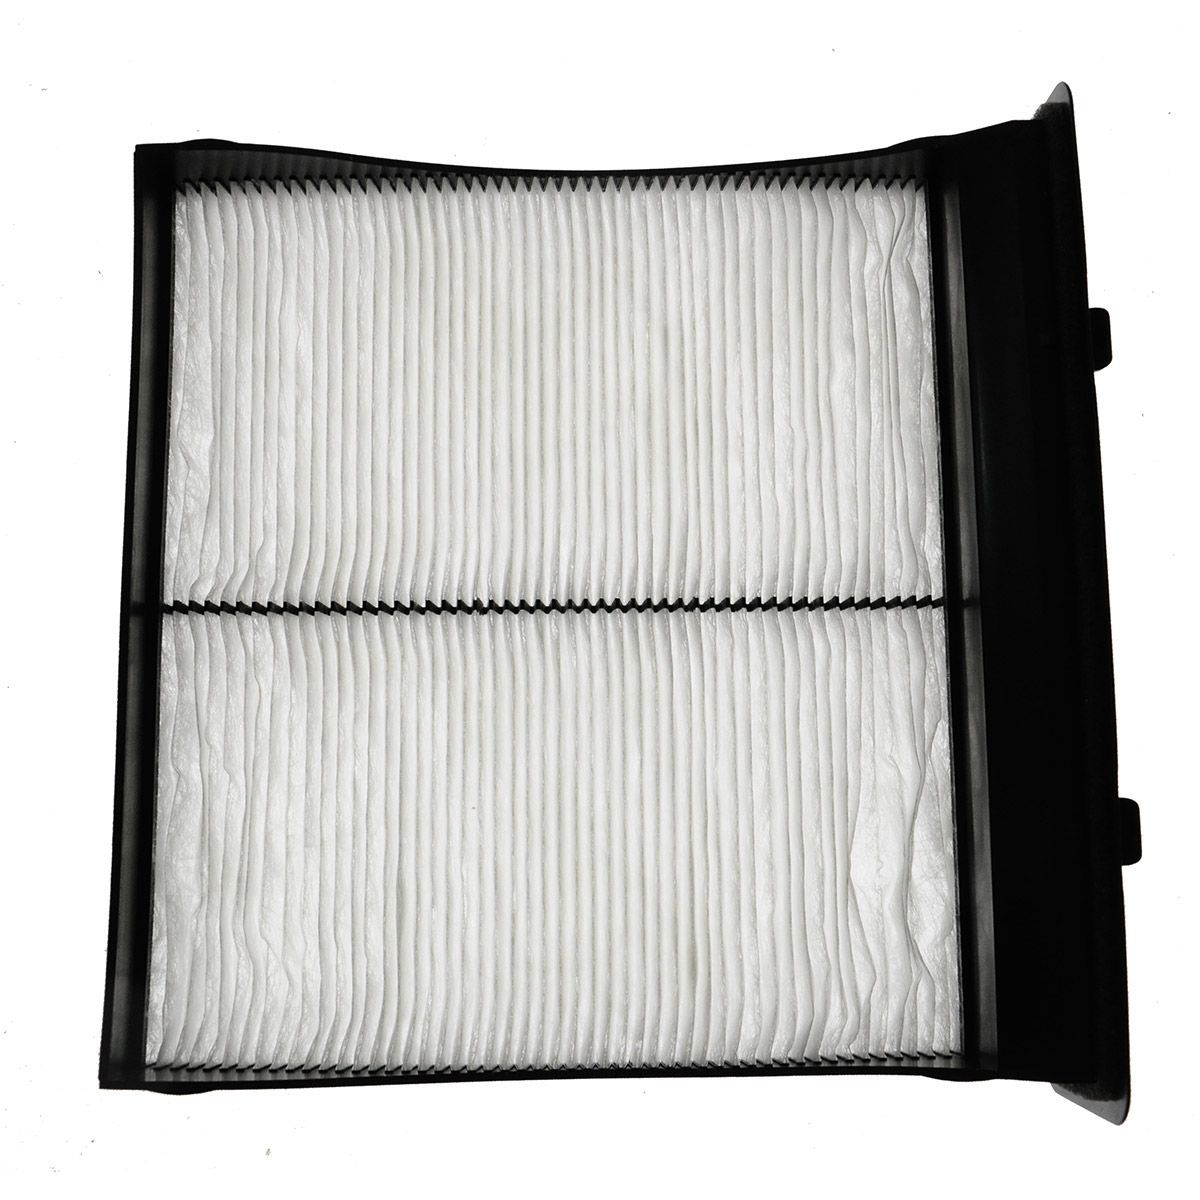 Cabin Fresh Air Filter New for 08-10 Subaru Forester Impreza